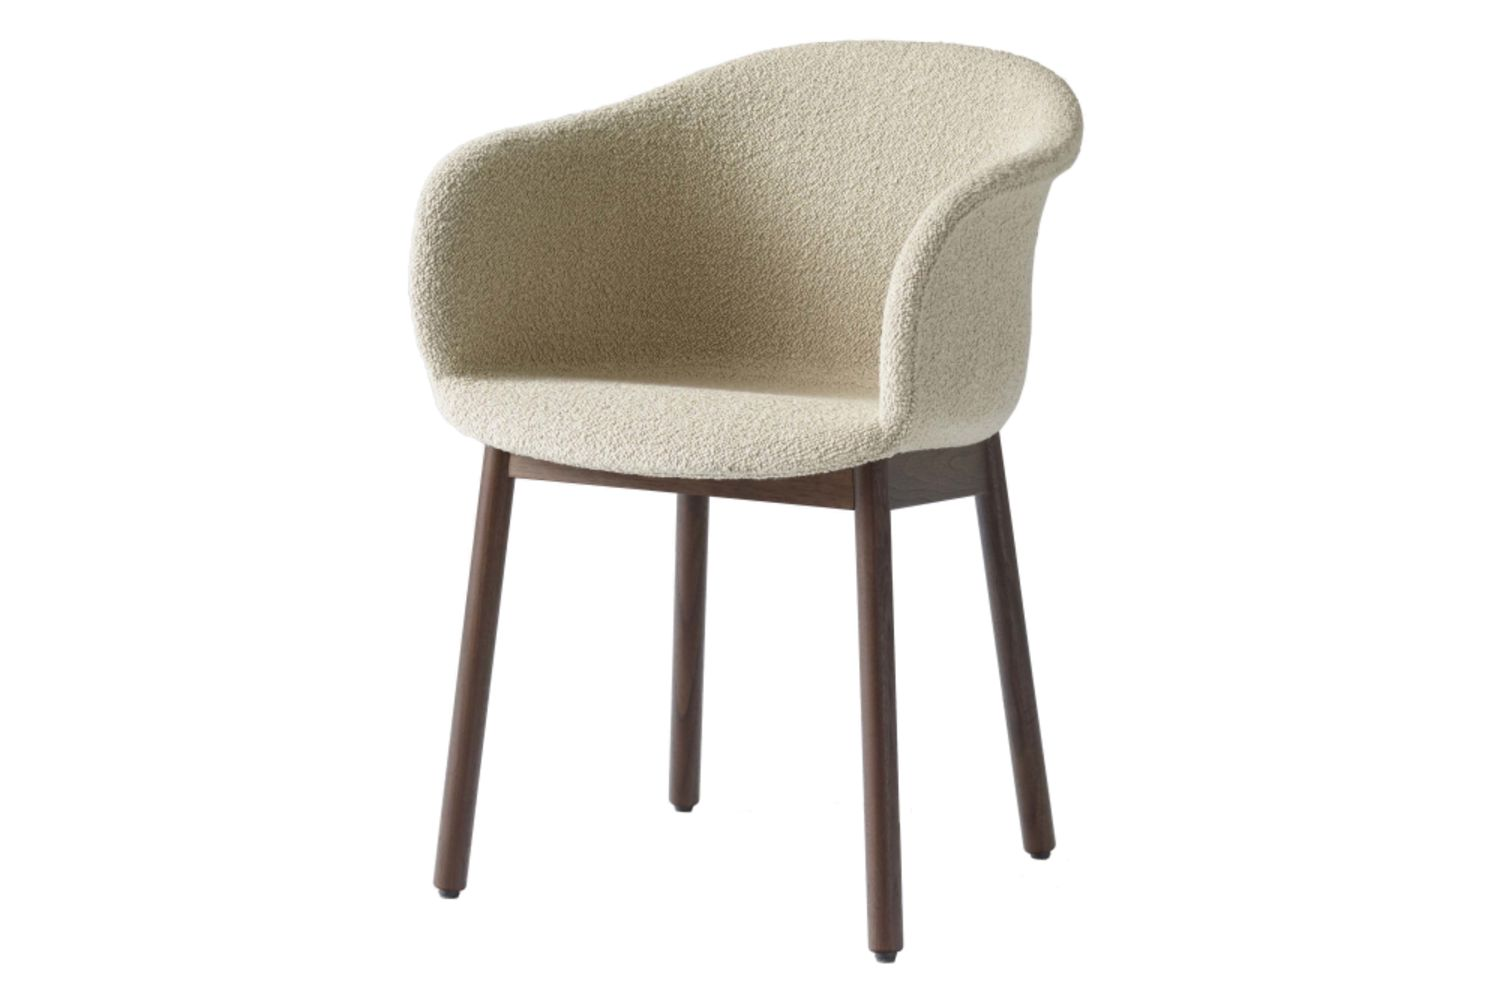 Elefy Chair, wooden base, Upholstered